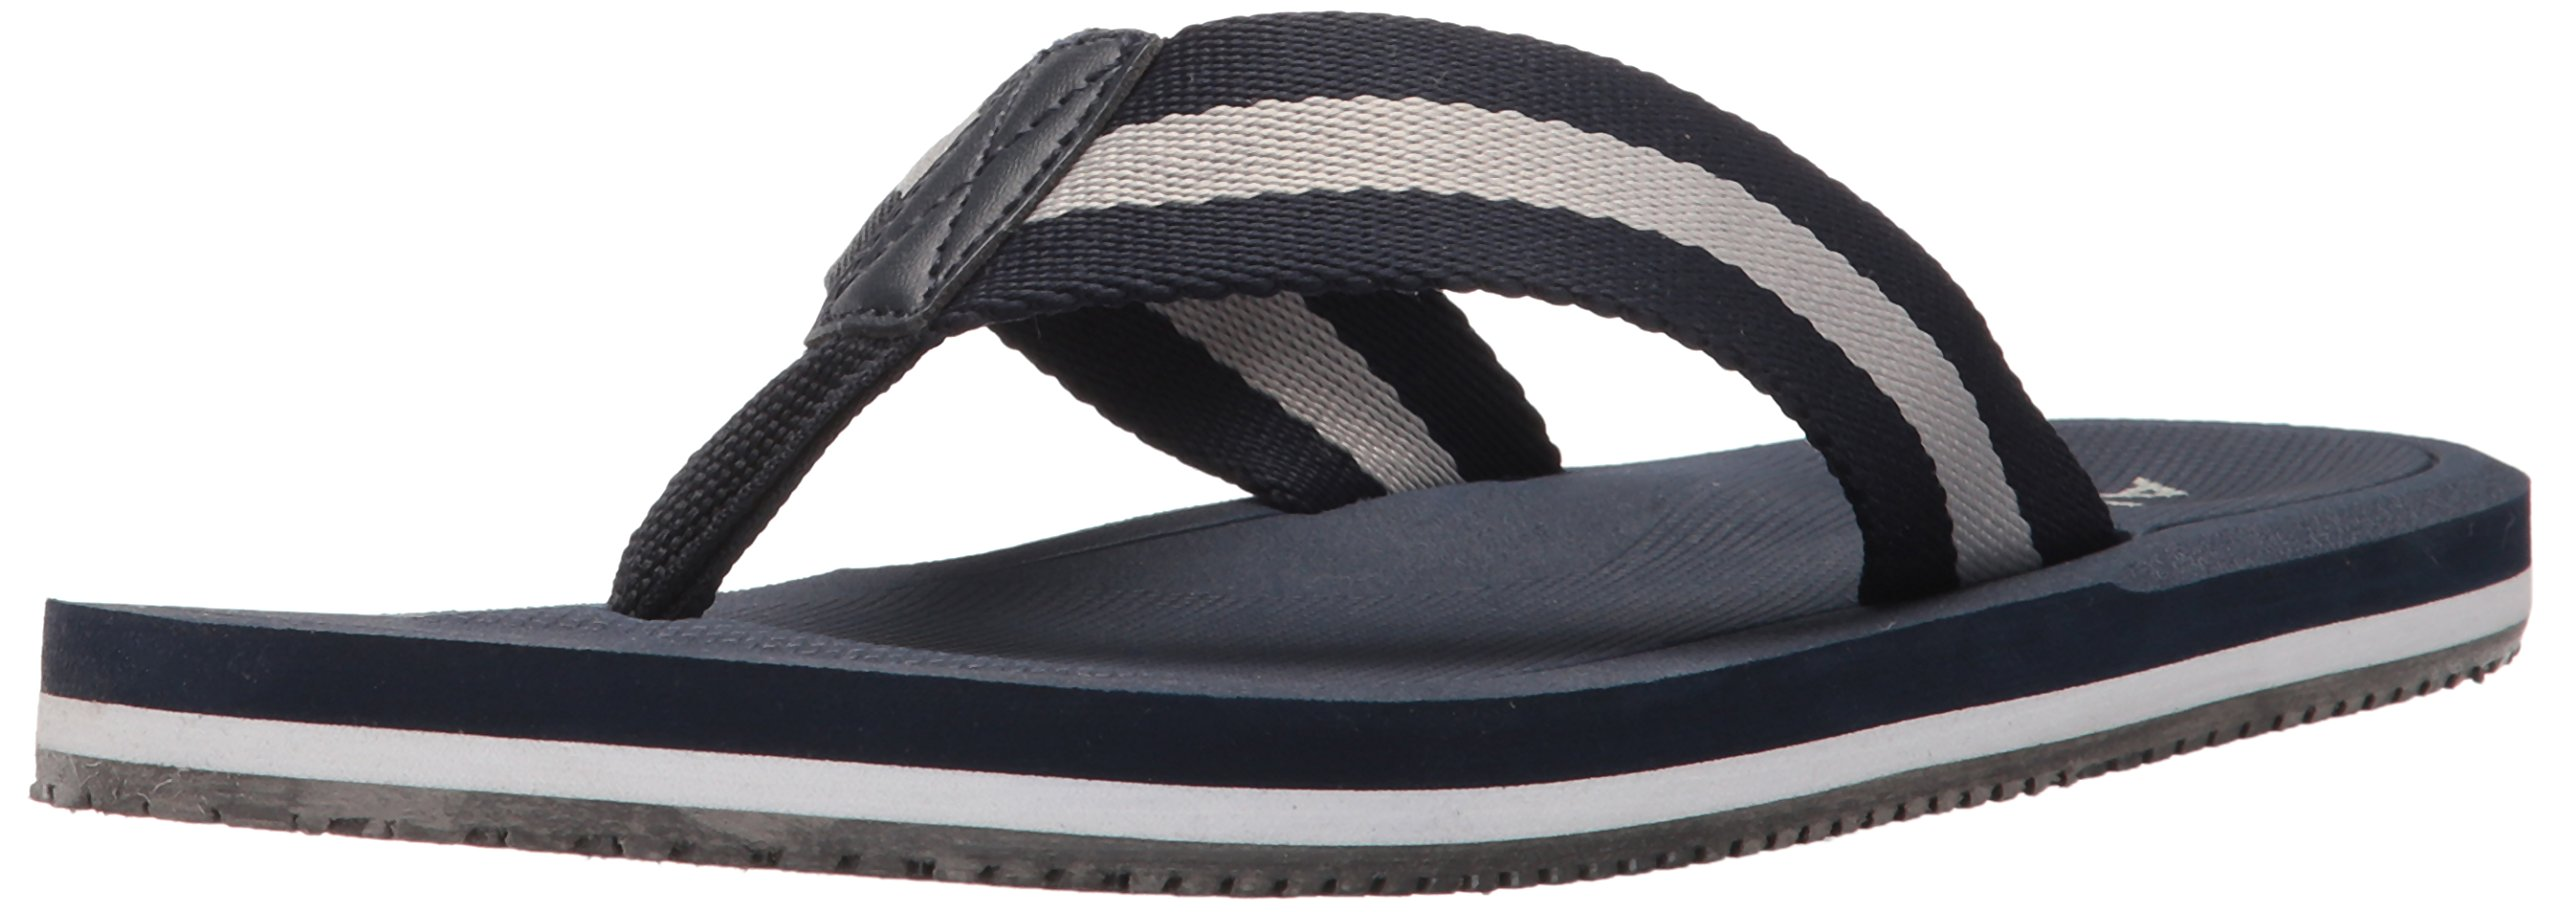 ALDO Men's Bortnick Flip Flop, Navy, 10.5 D US